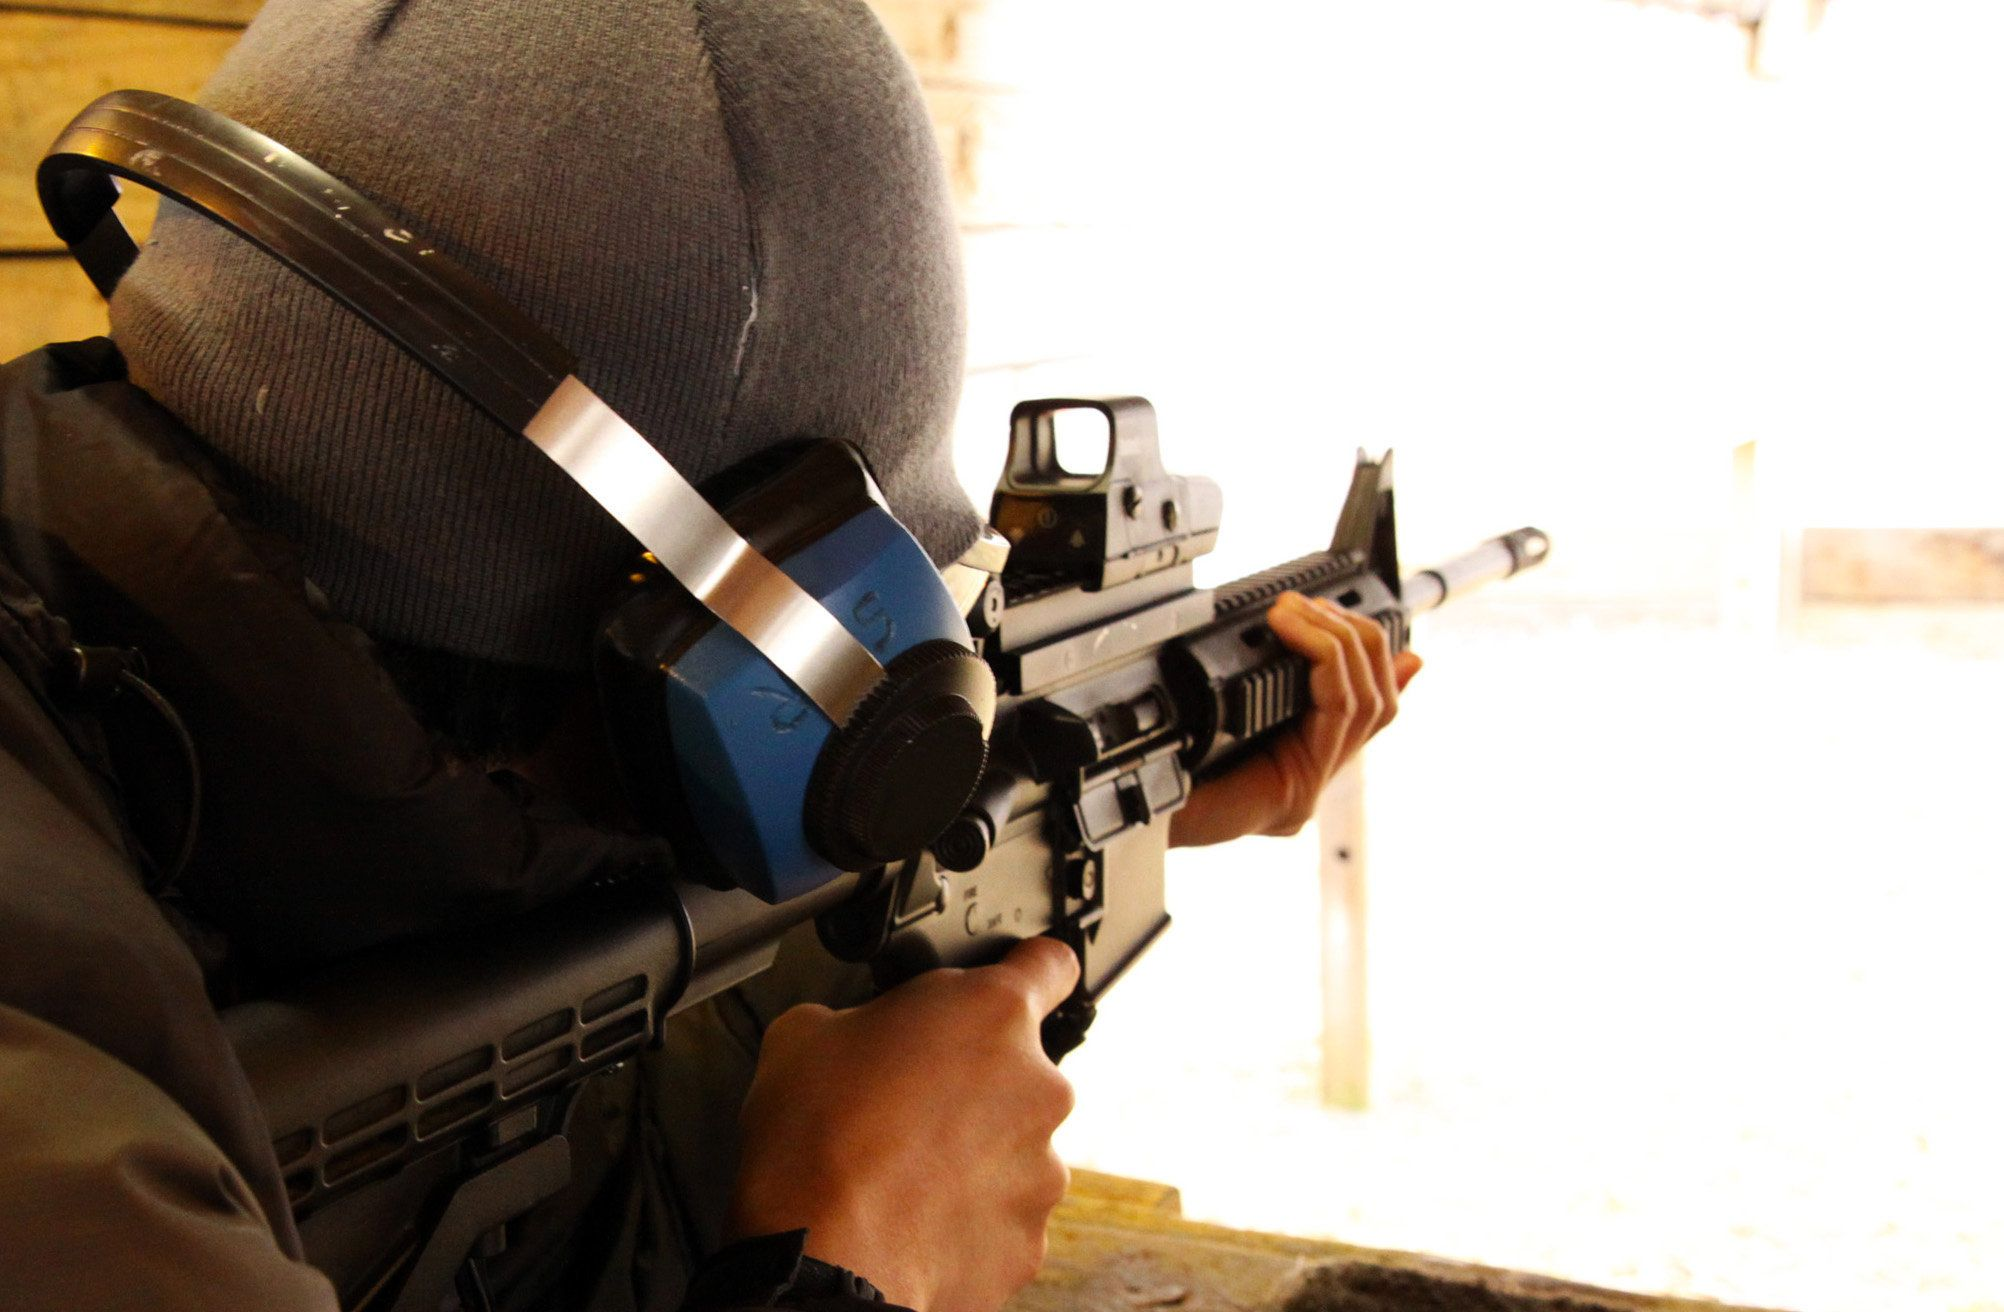 Aiming at the target with the assult rifle in the gun ranch